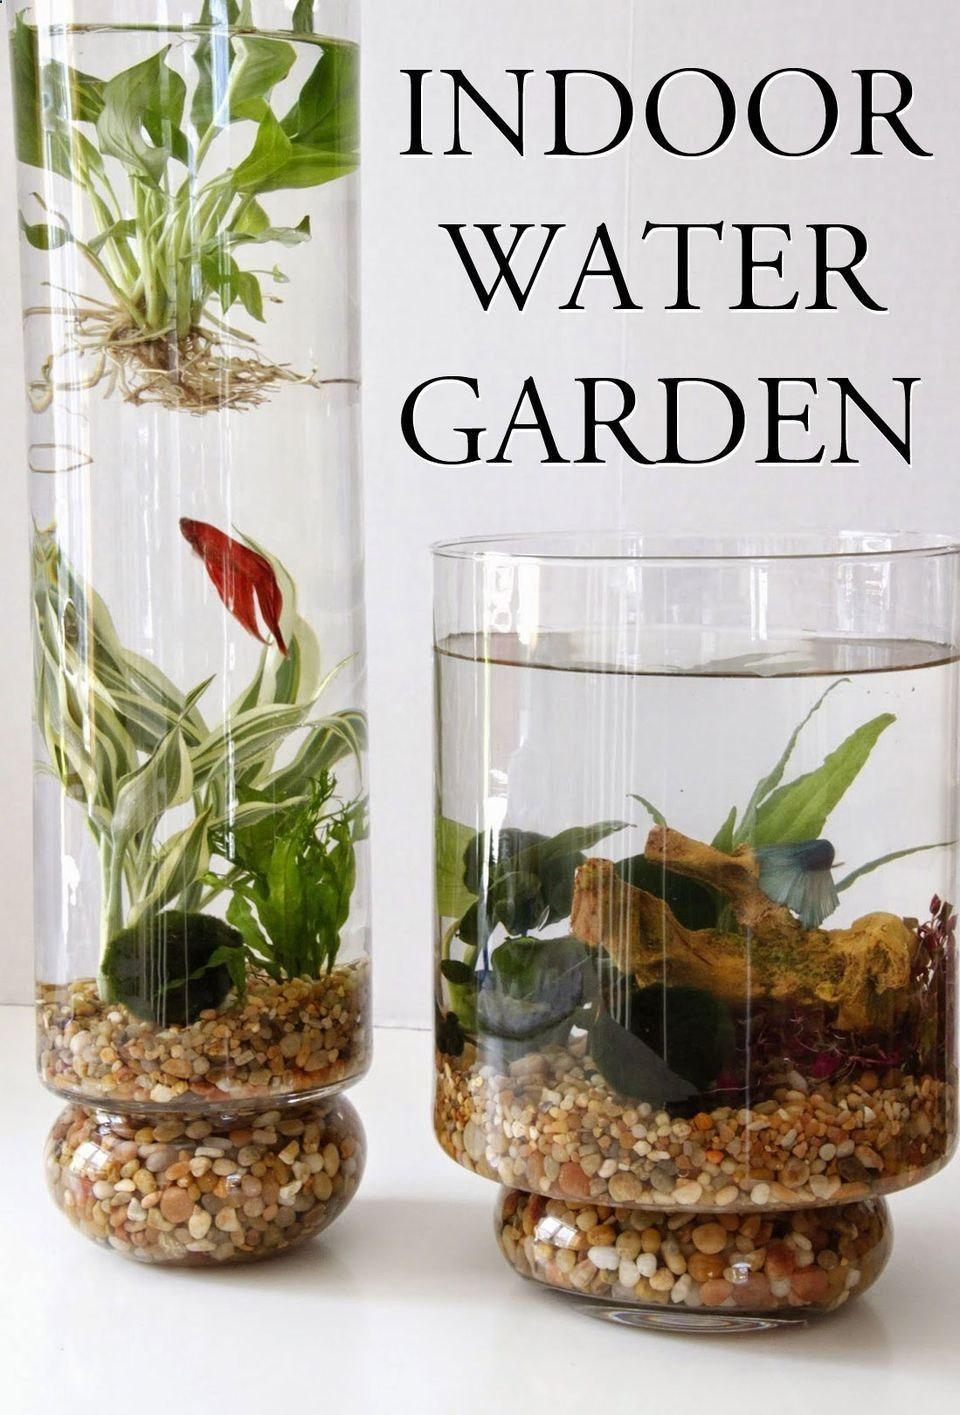 Aquaponics system fascinating diy indoor aquaponics fish tank